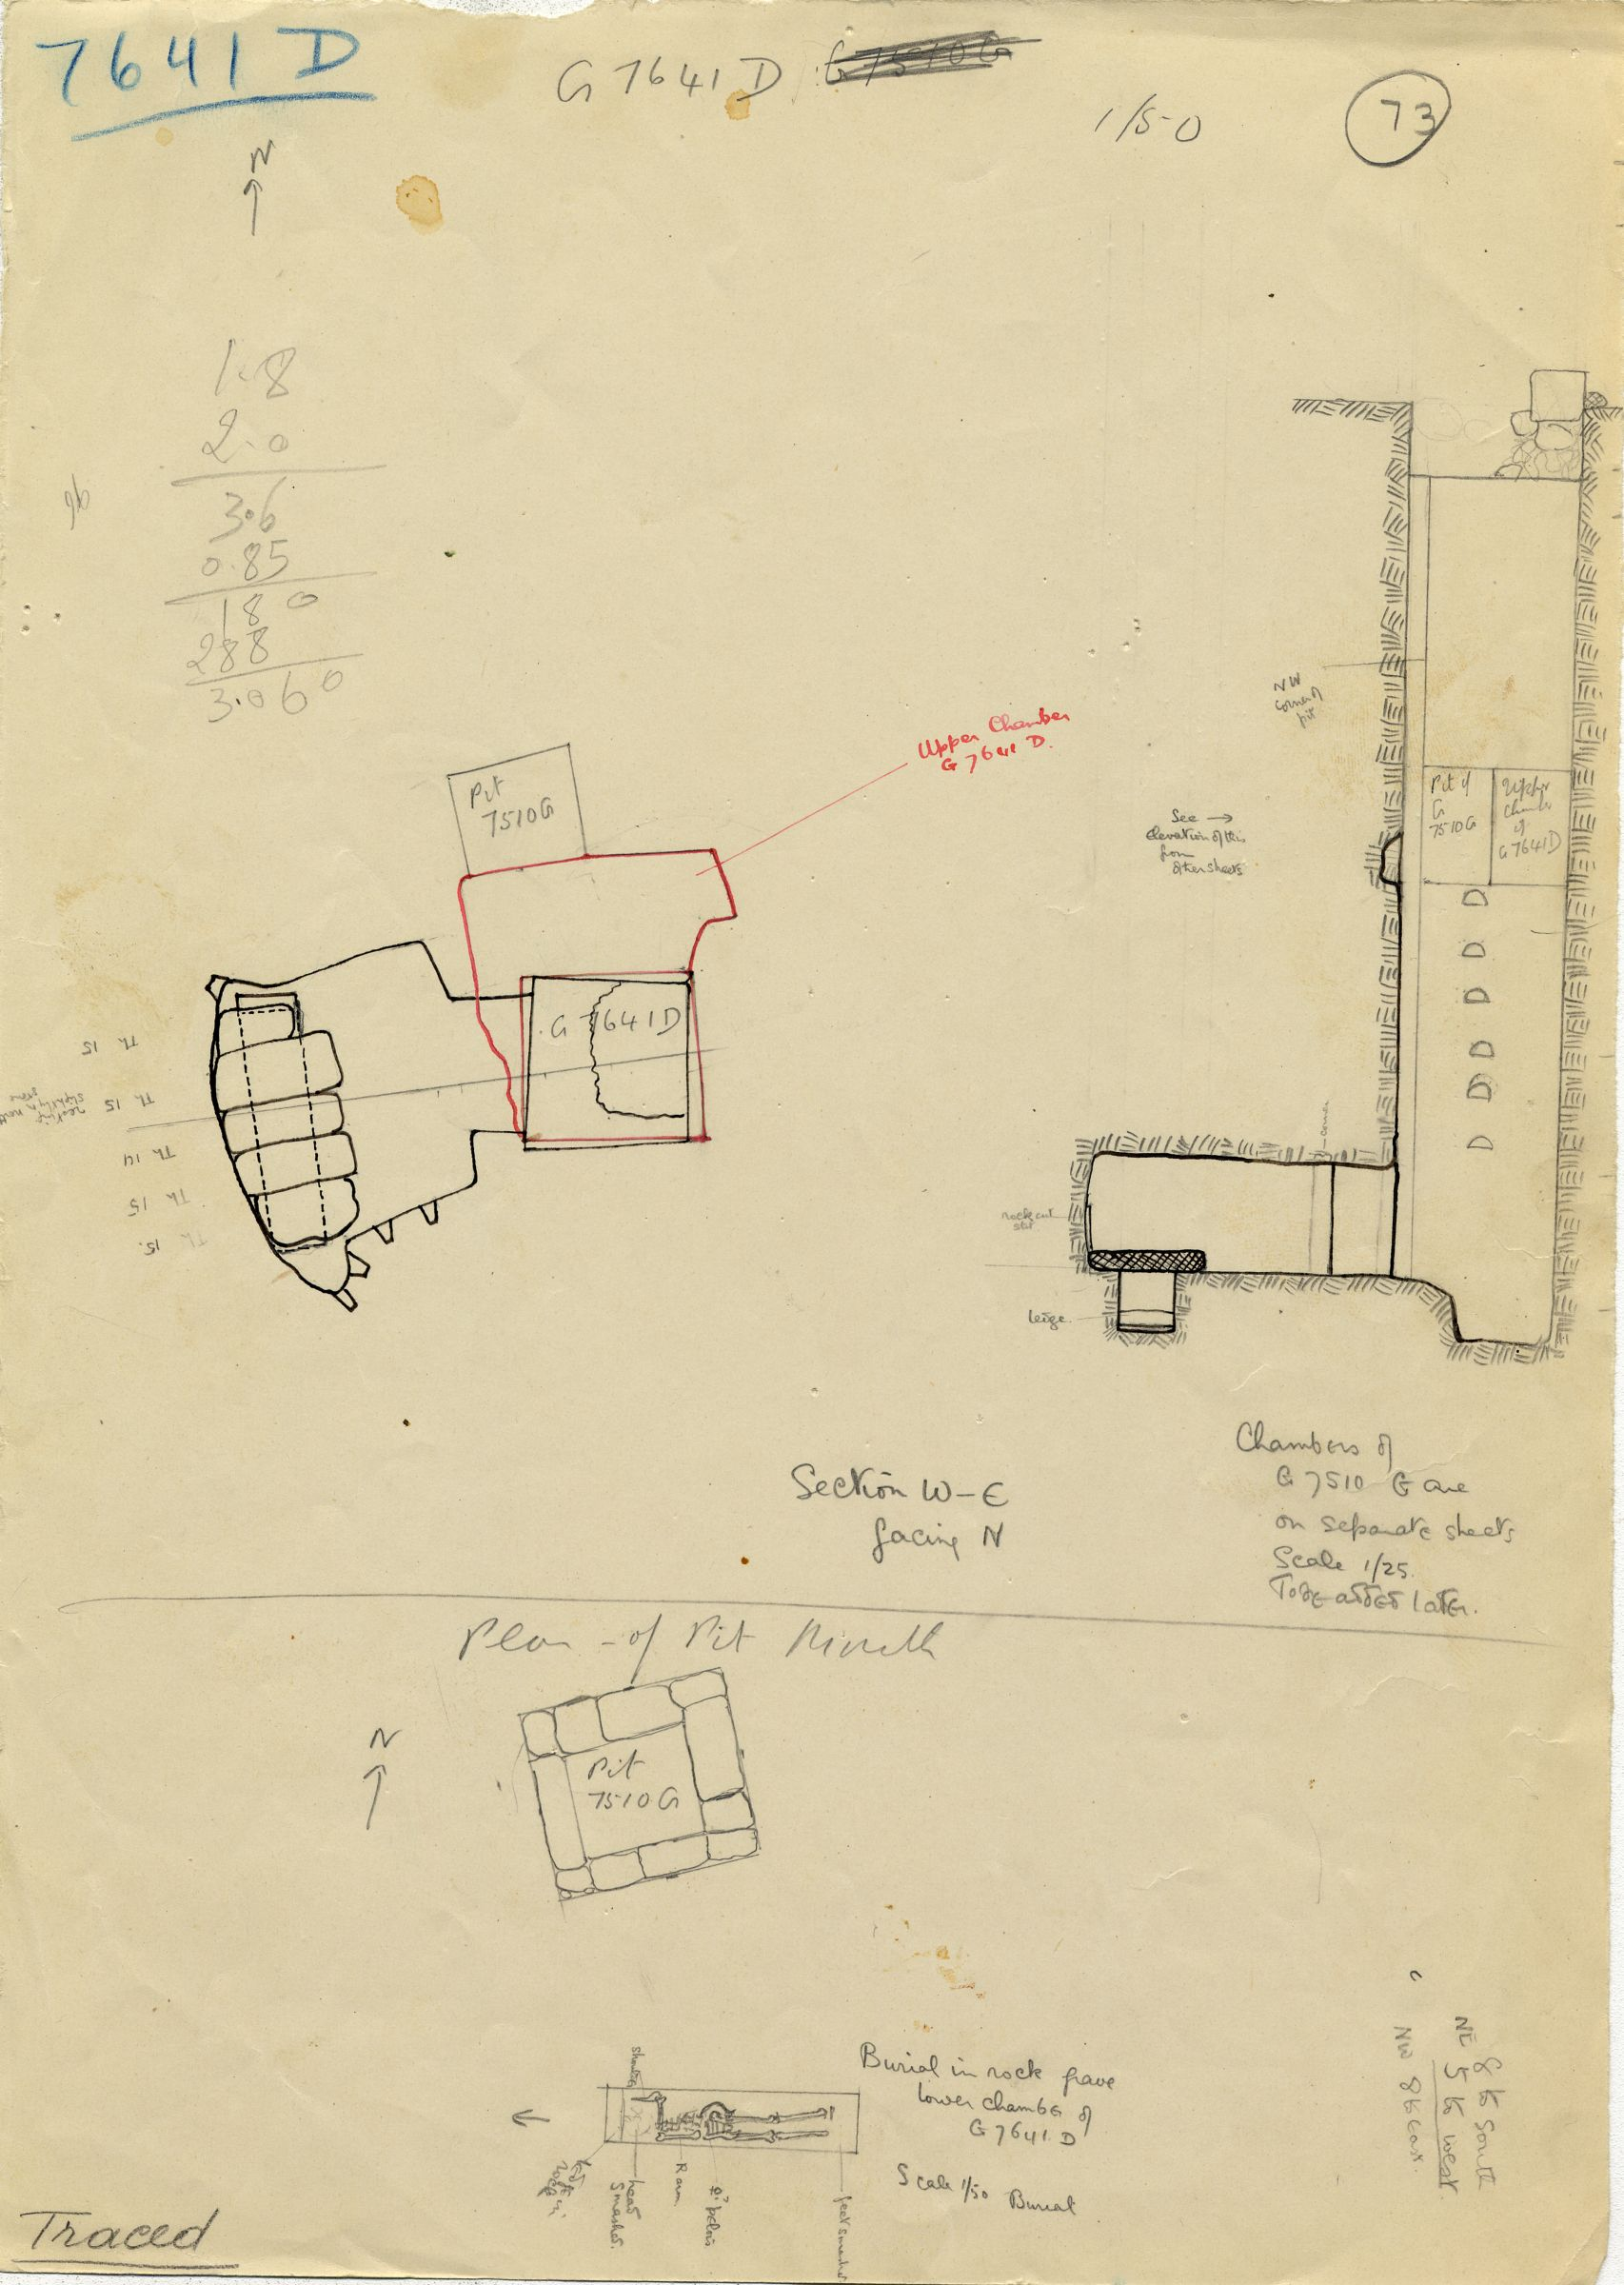 Maps and plans: G 7641, Shaft D